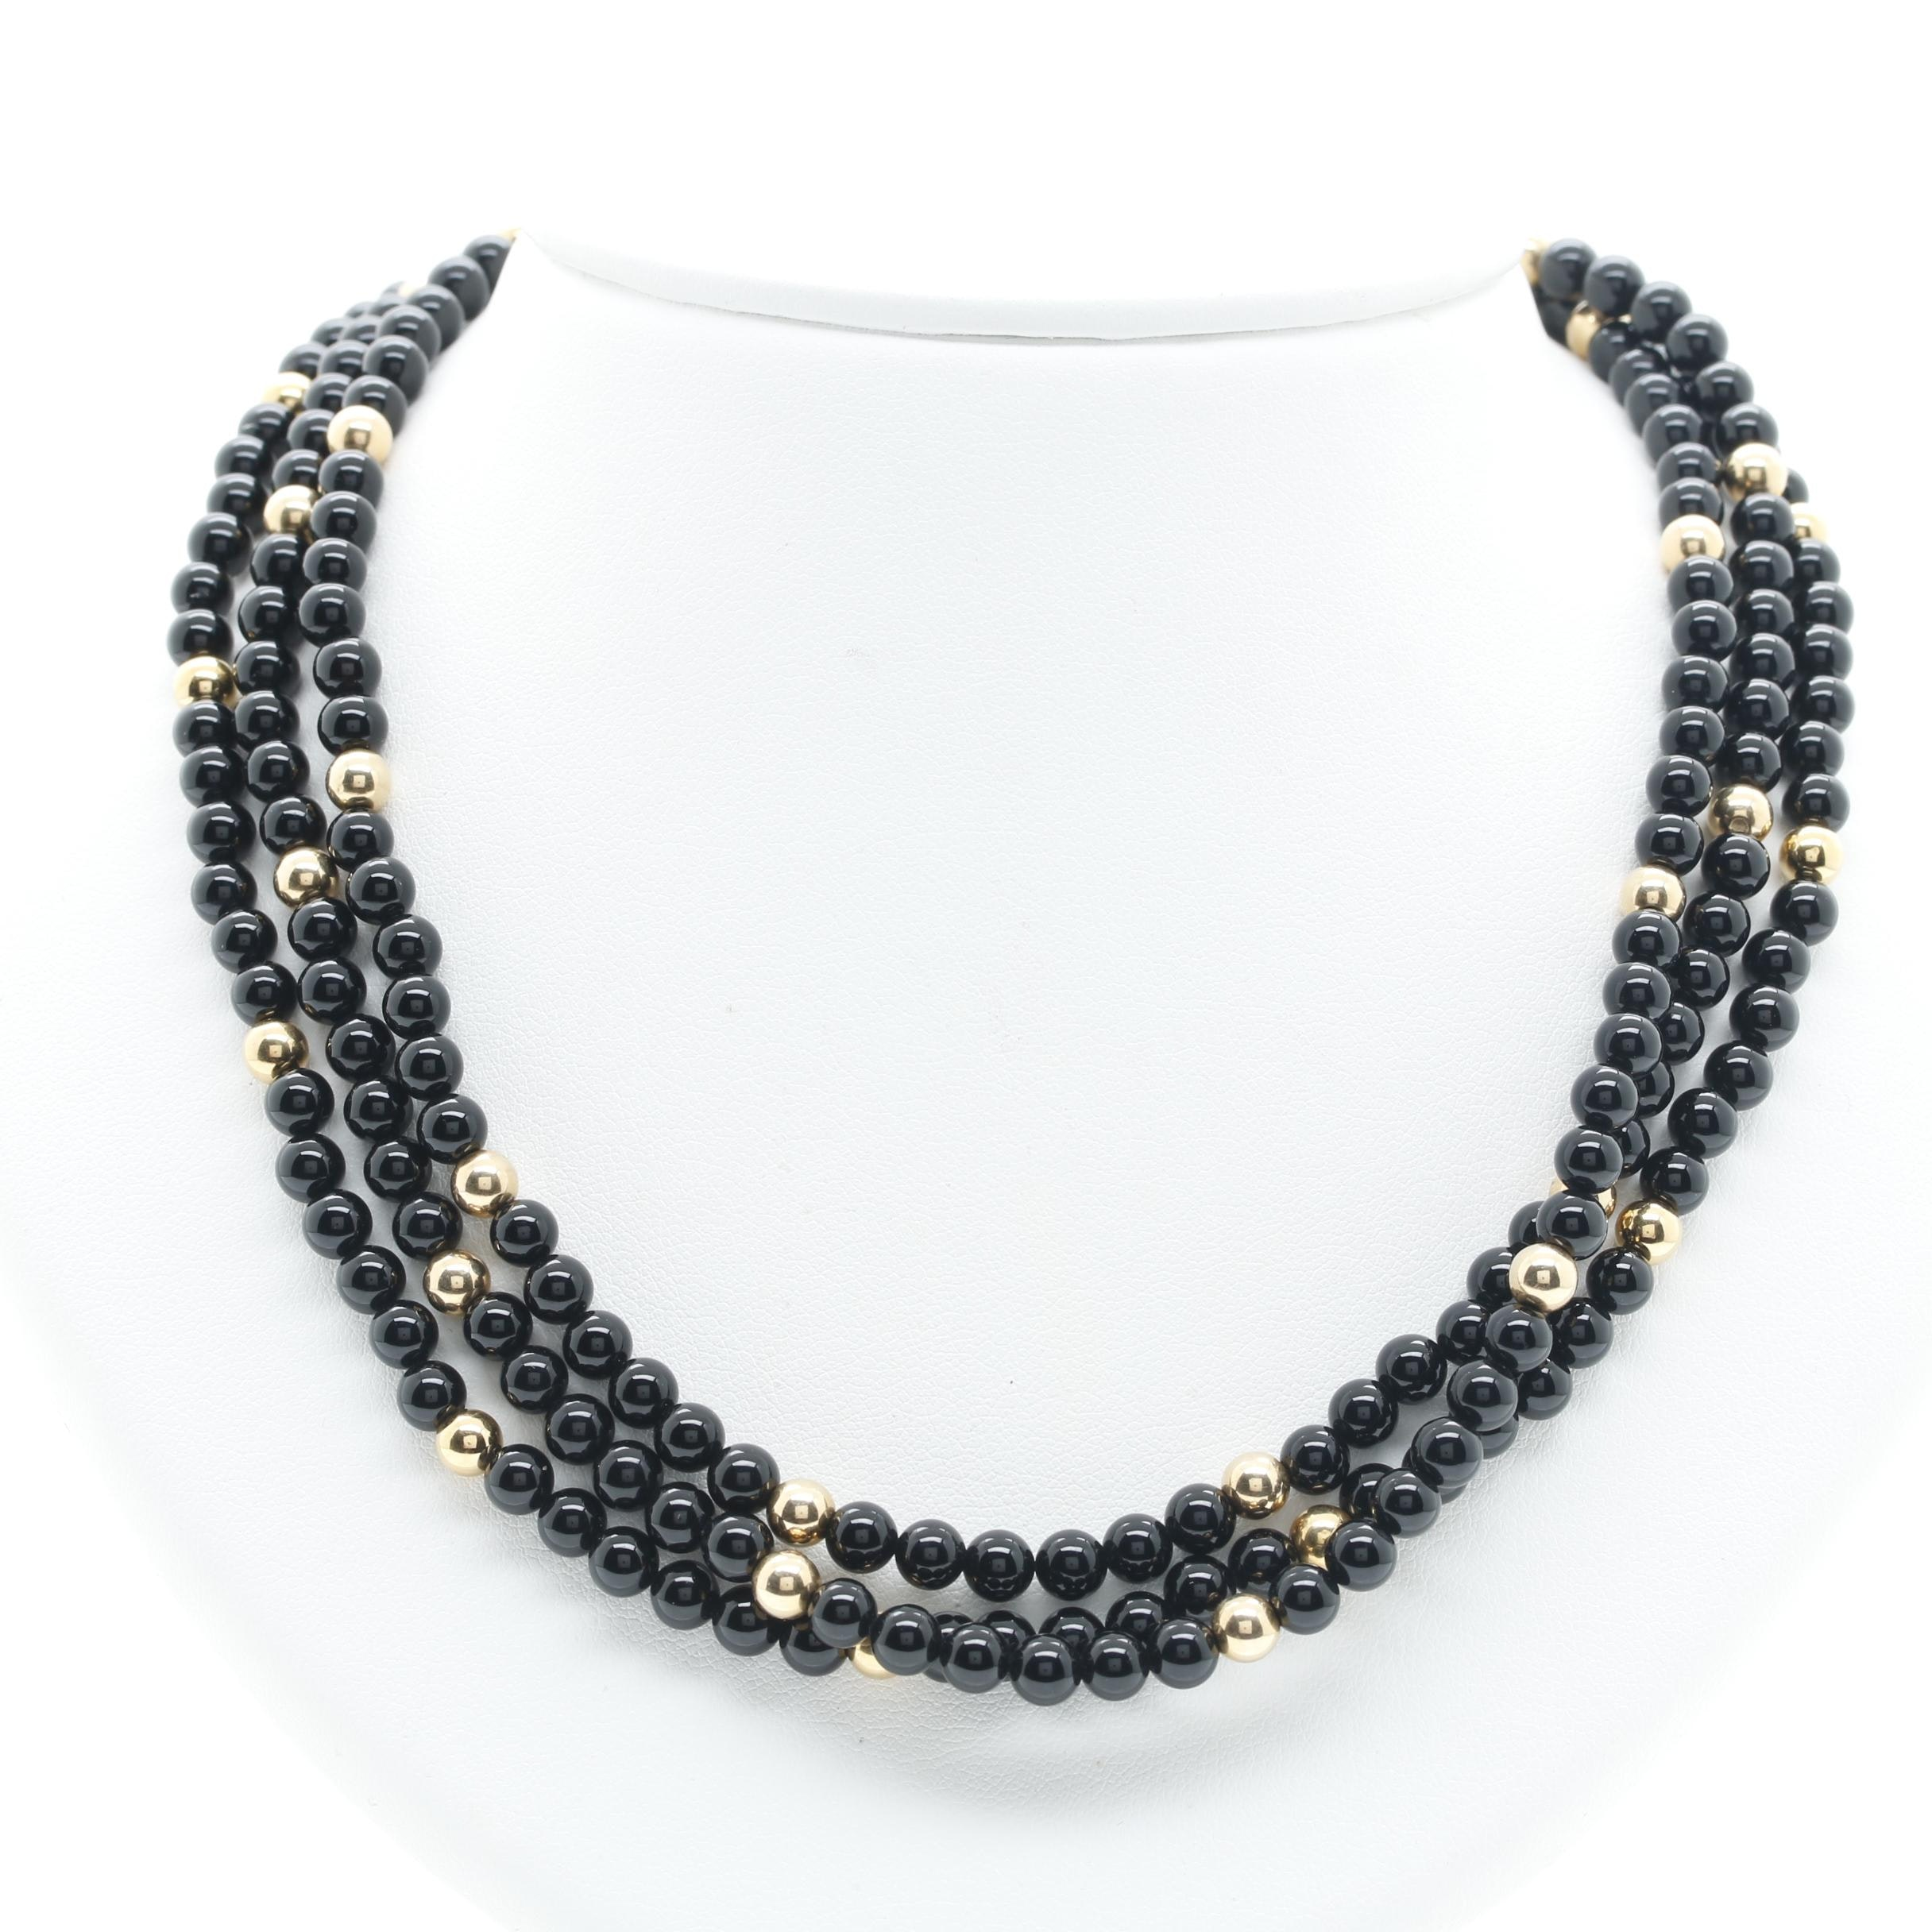 14K Yellow Gold Black Onyx Beaded Necklace